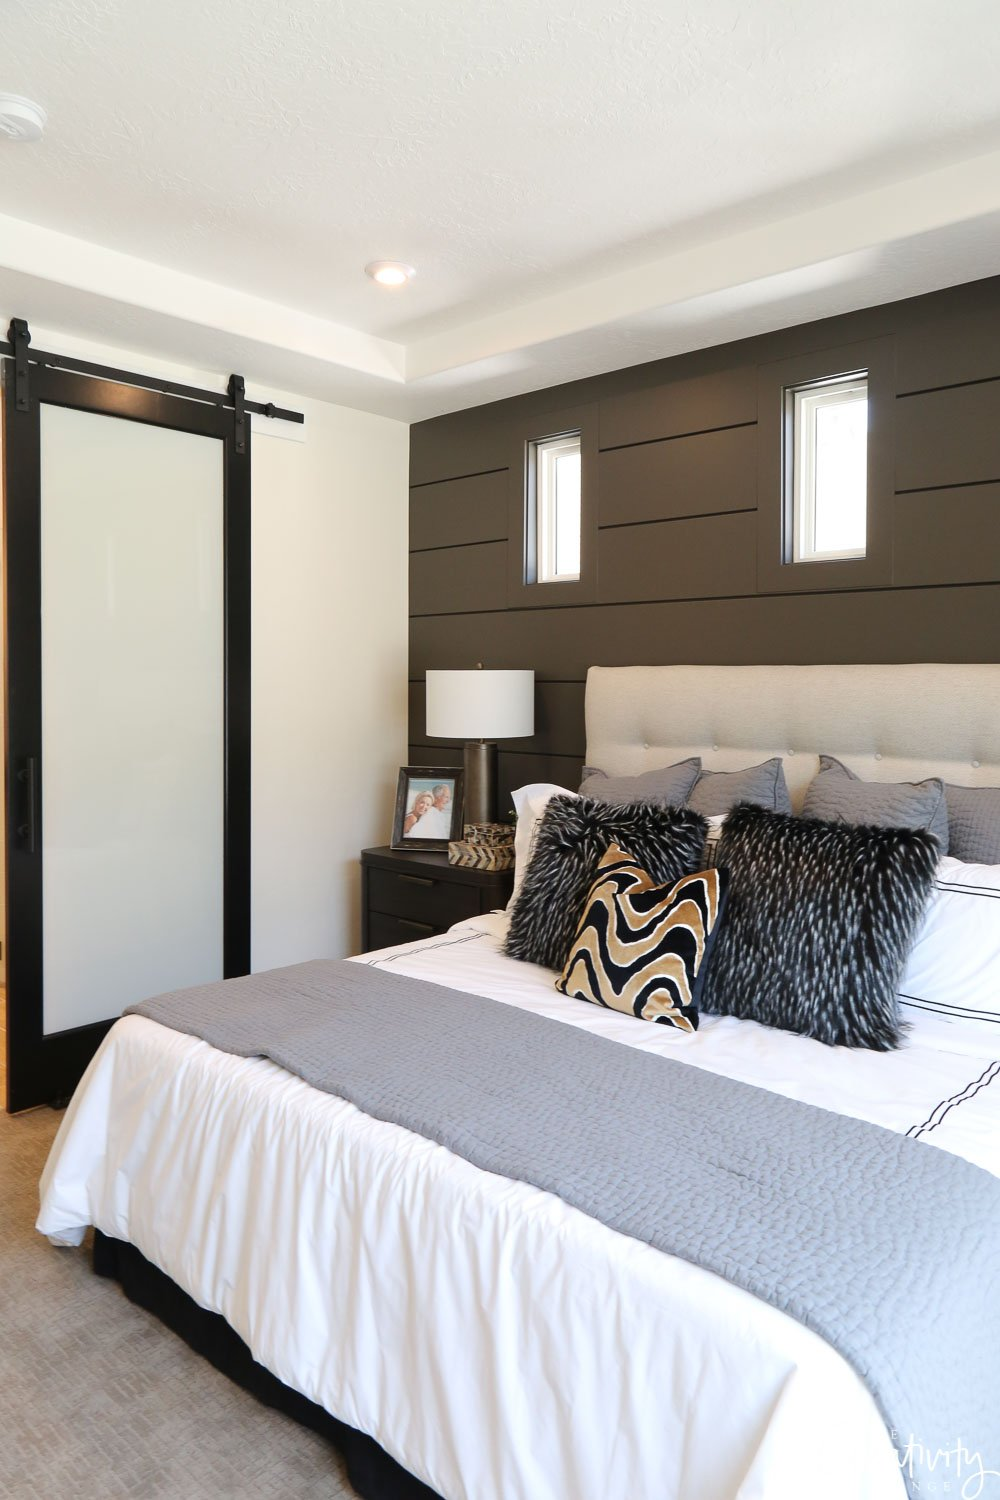 Painted Shiplap Accent Wall Benjamin Moore Kendall Charcoal.